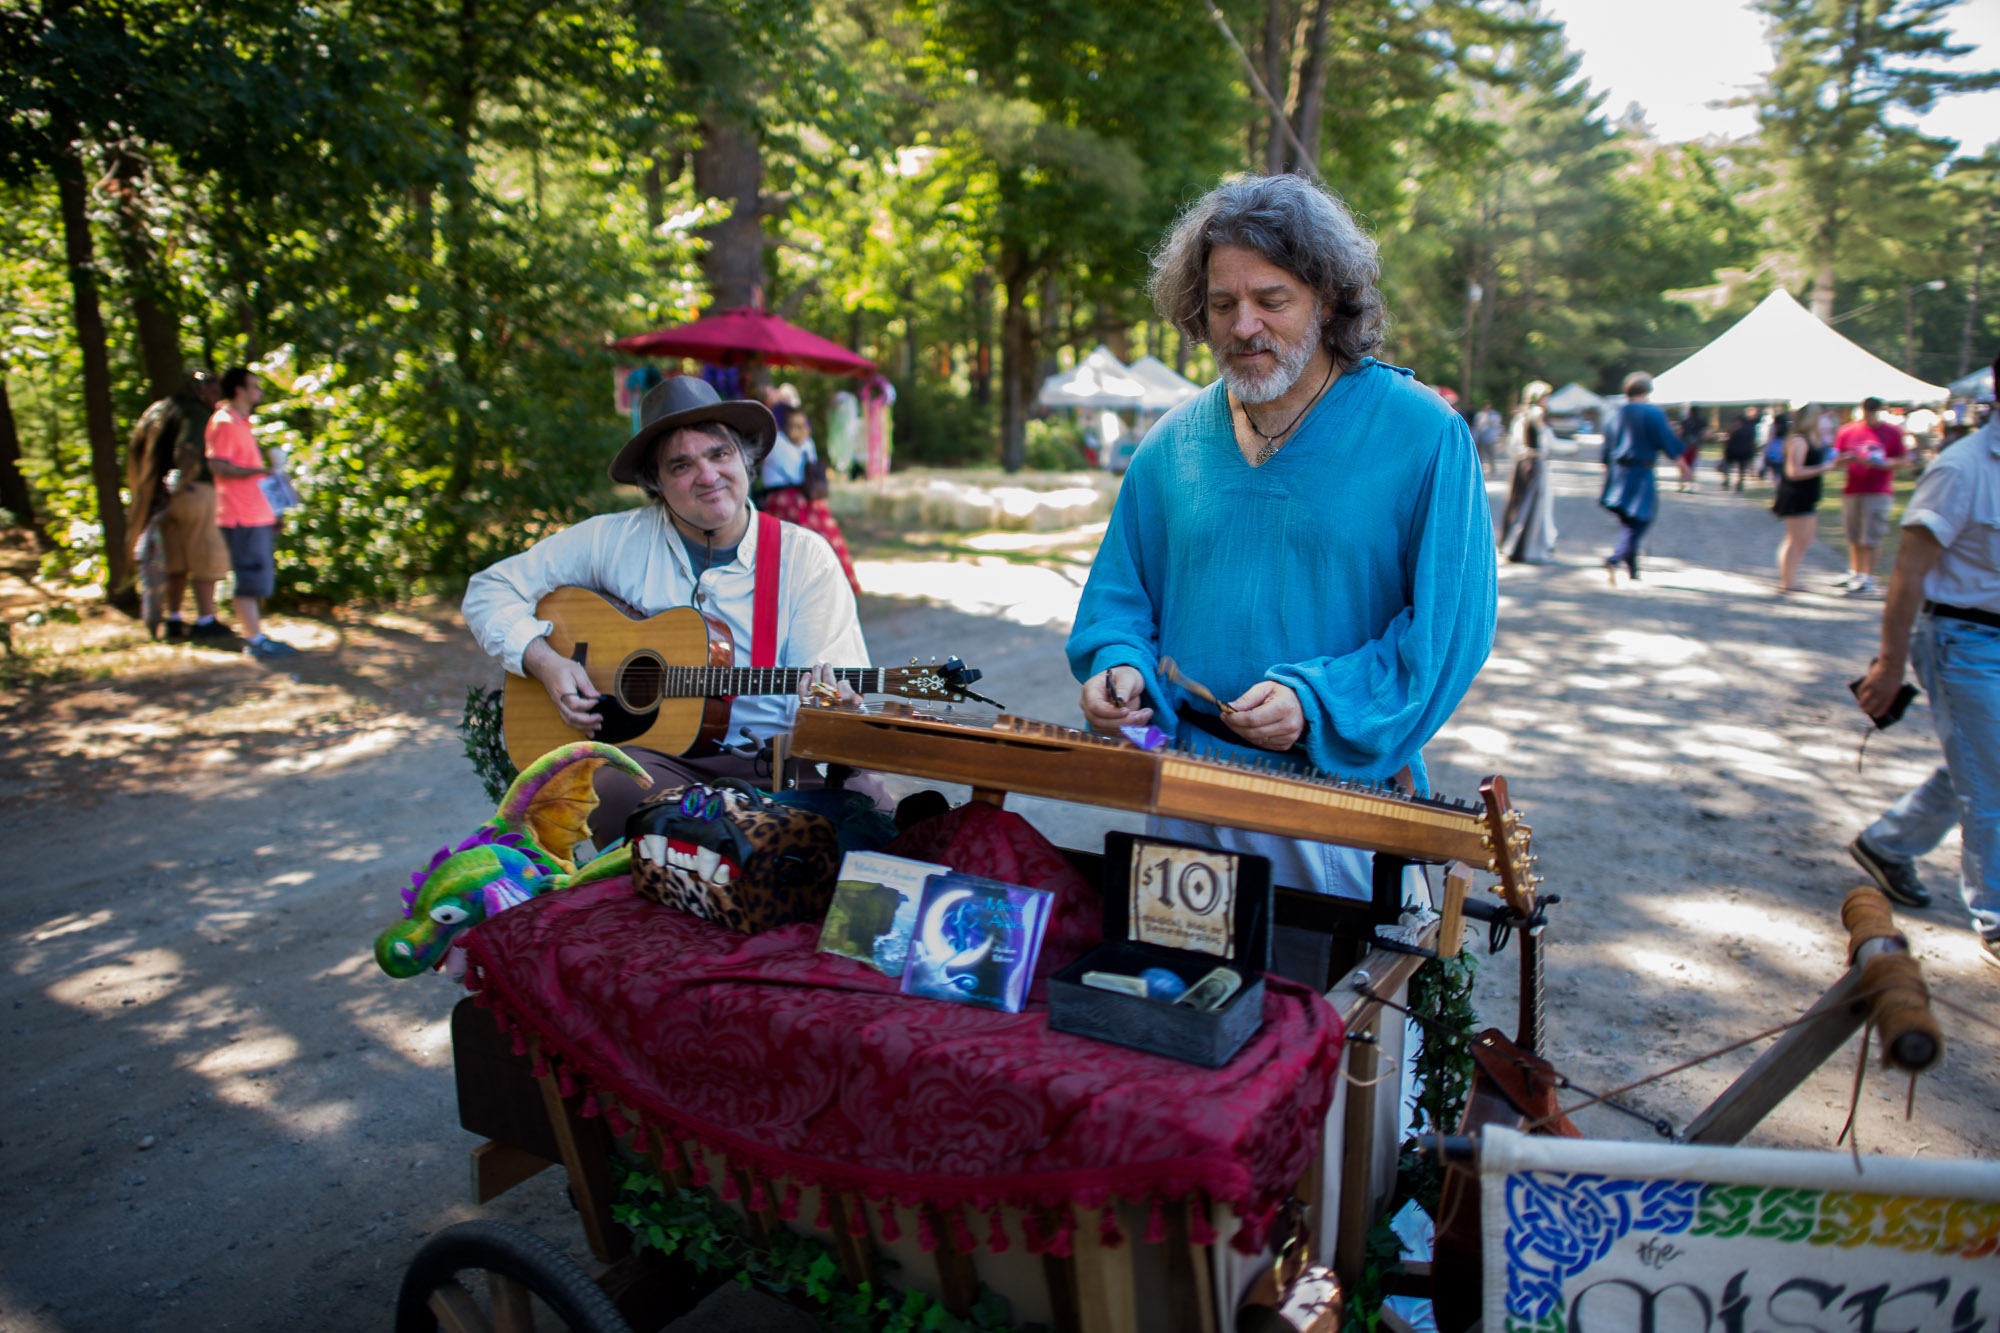 Vendors at a Renaissance Festival